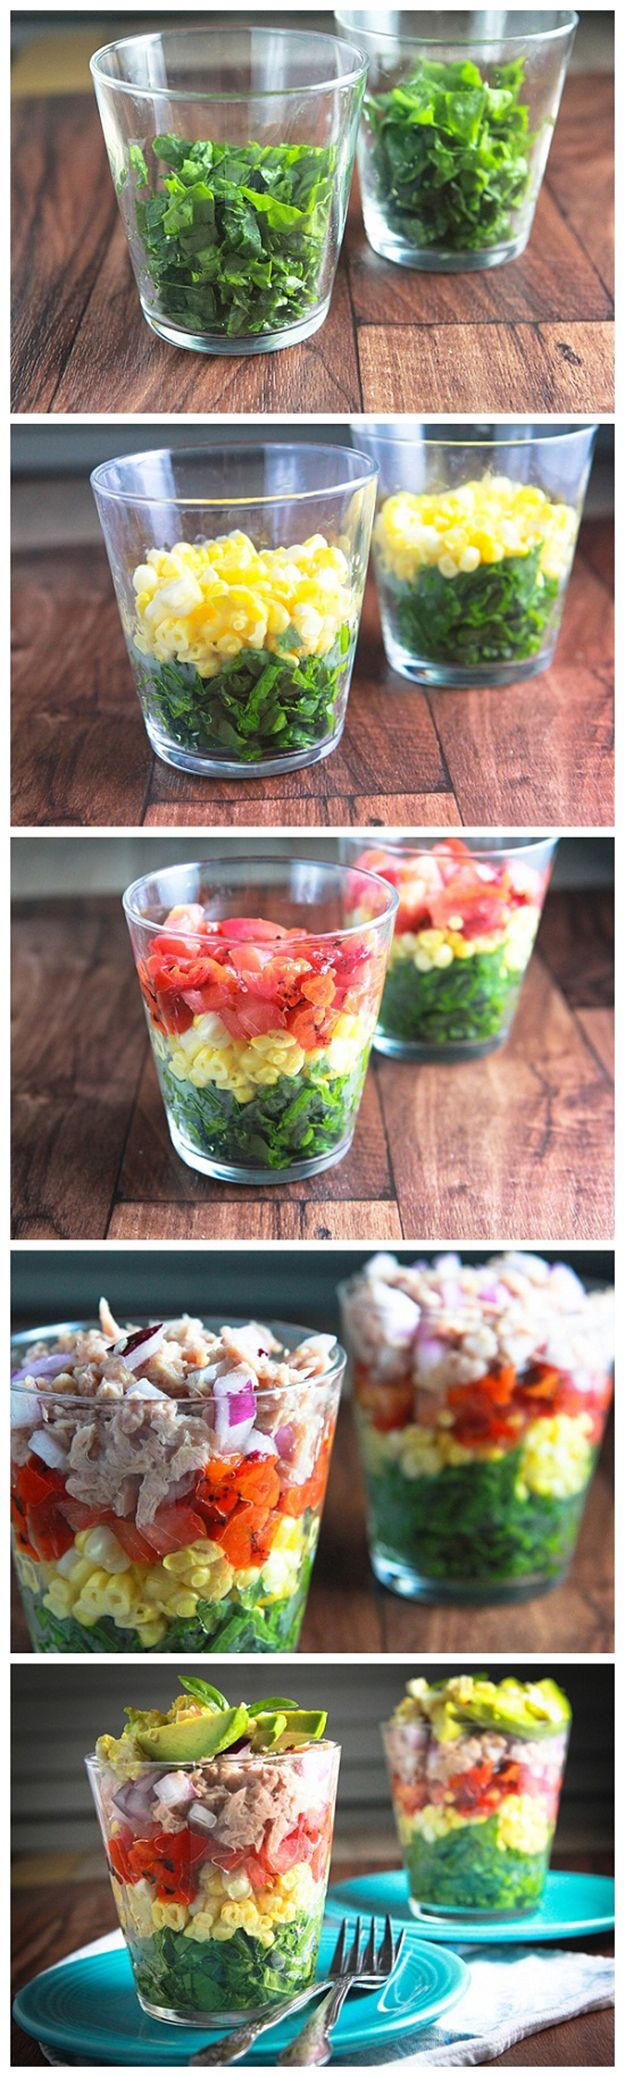 Rainbow Salad In A Glass This Delightful Salad To Go Easy Lunch Recipes For  Work